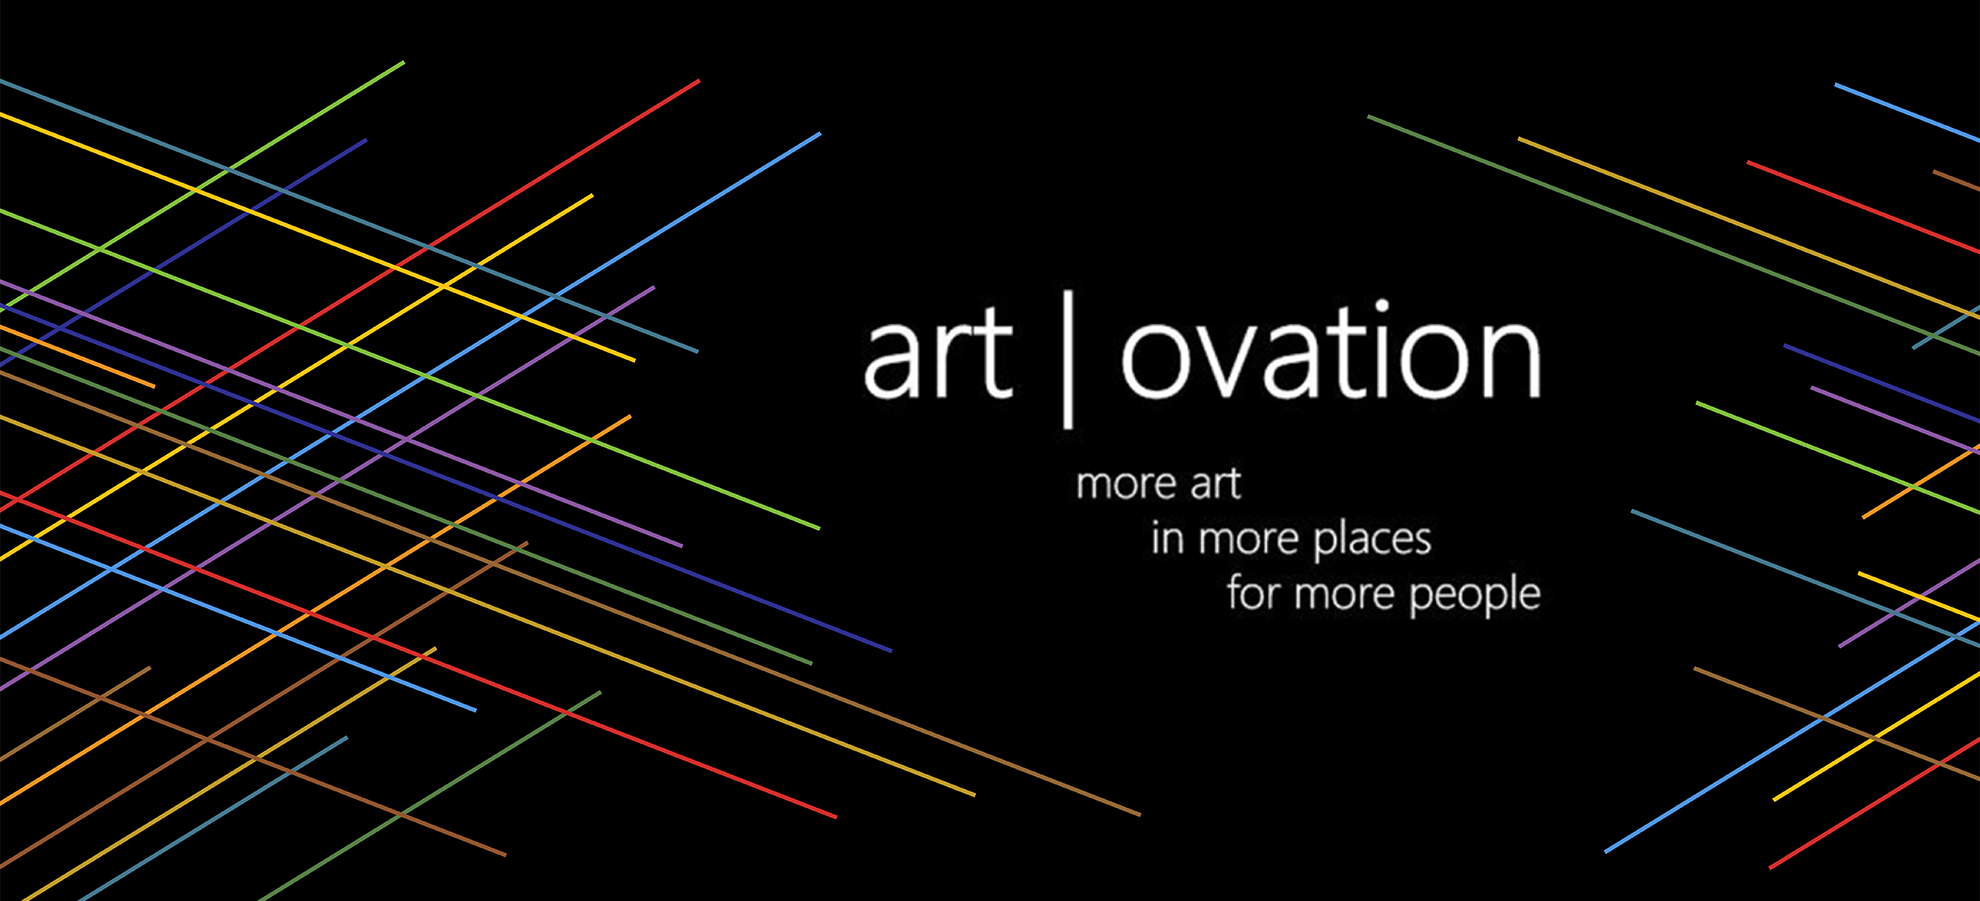 Art Ovation Graphic